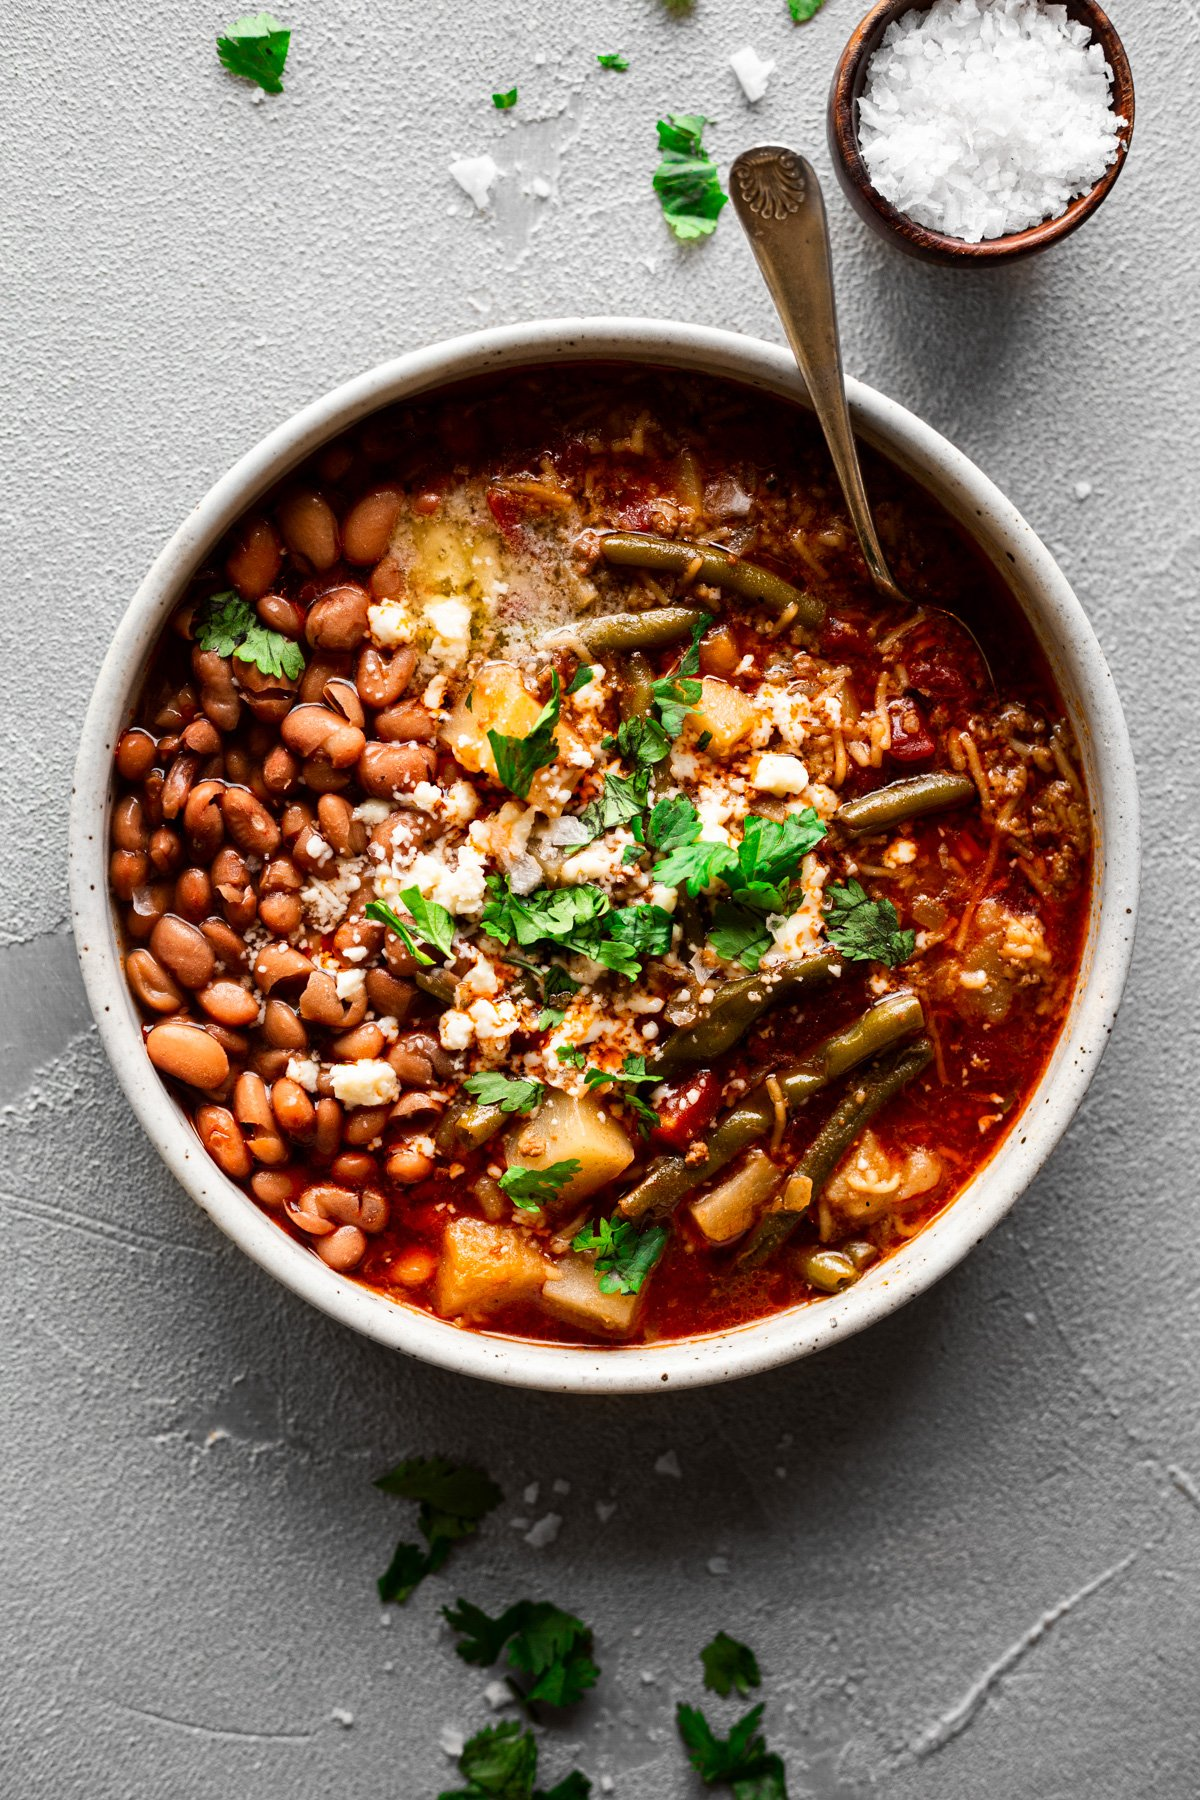 fideo loco bowl of picadillo, pinto beans, and broth